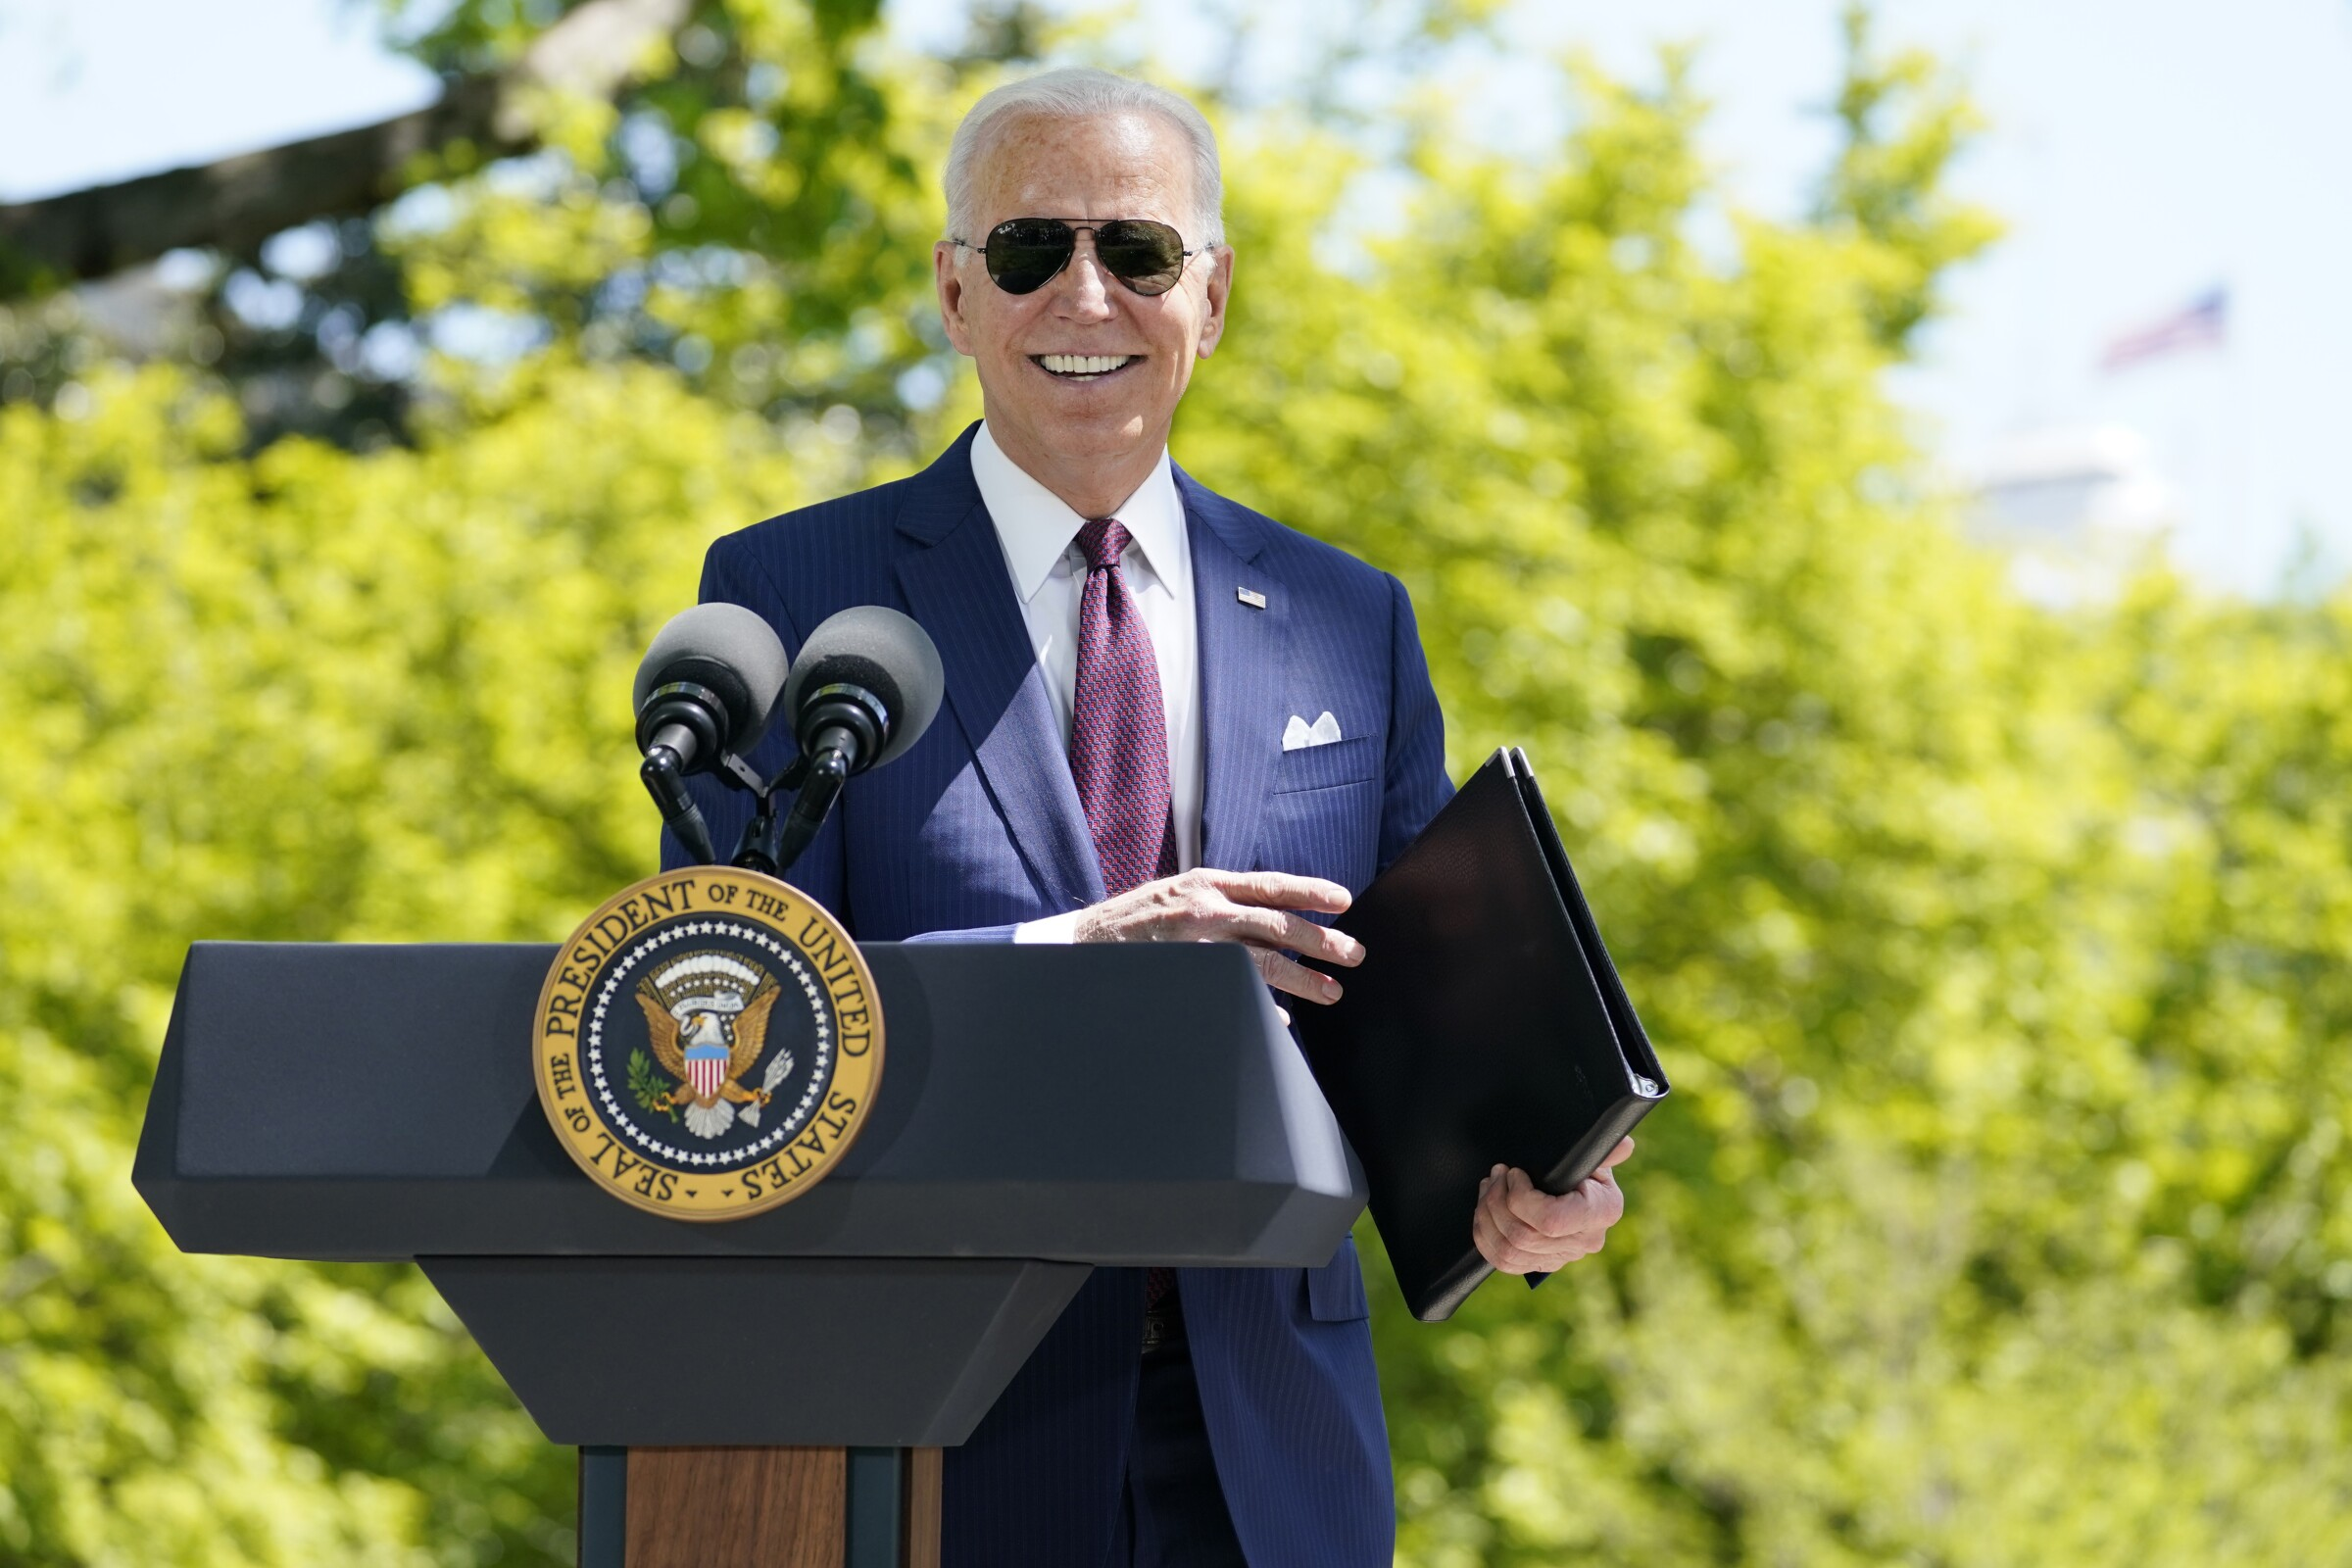 President Biden smiles as he stands behind a podium on the North Lawn of the White House